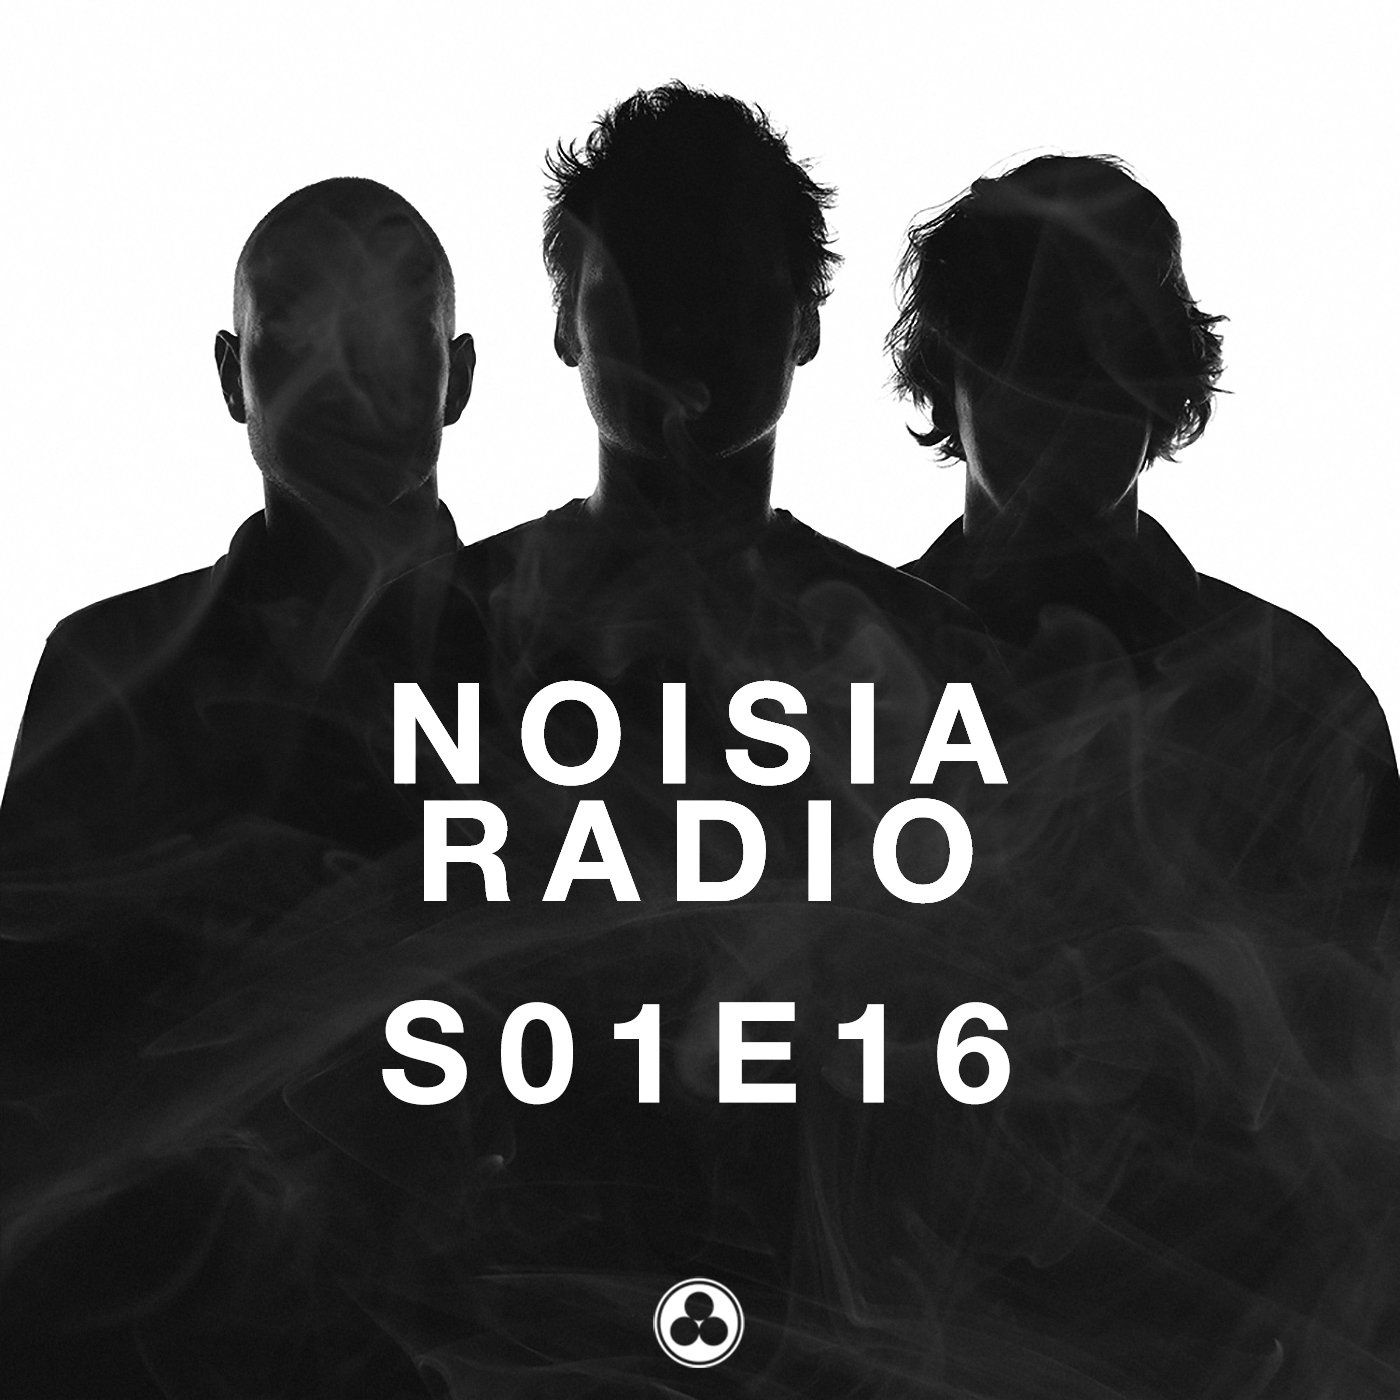 Noisia Radio S01E16